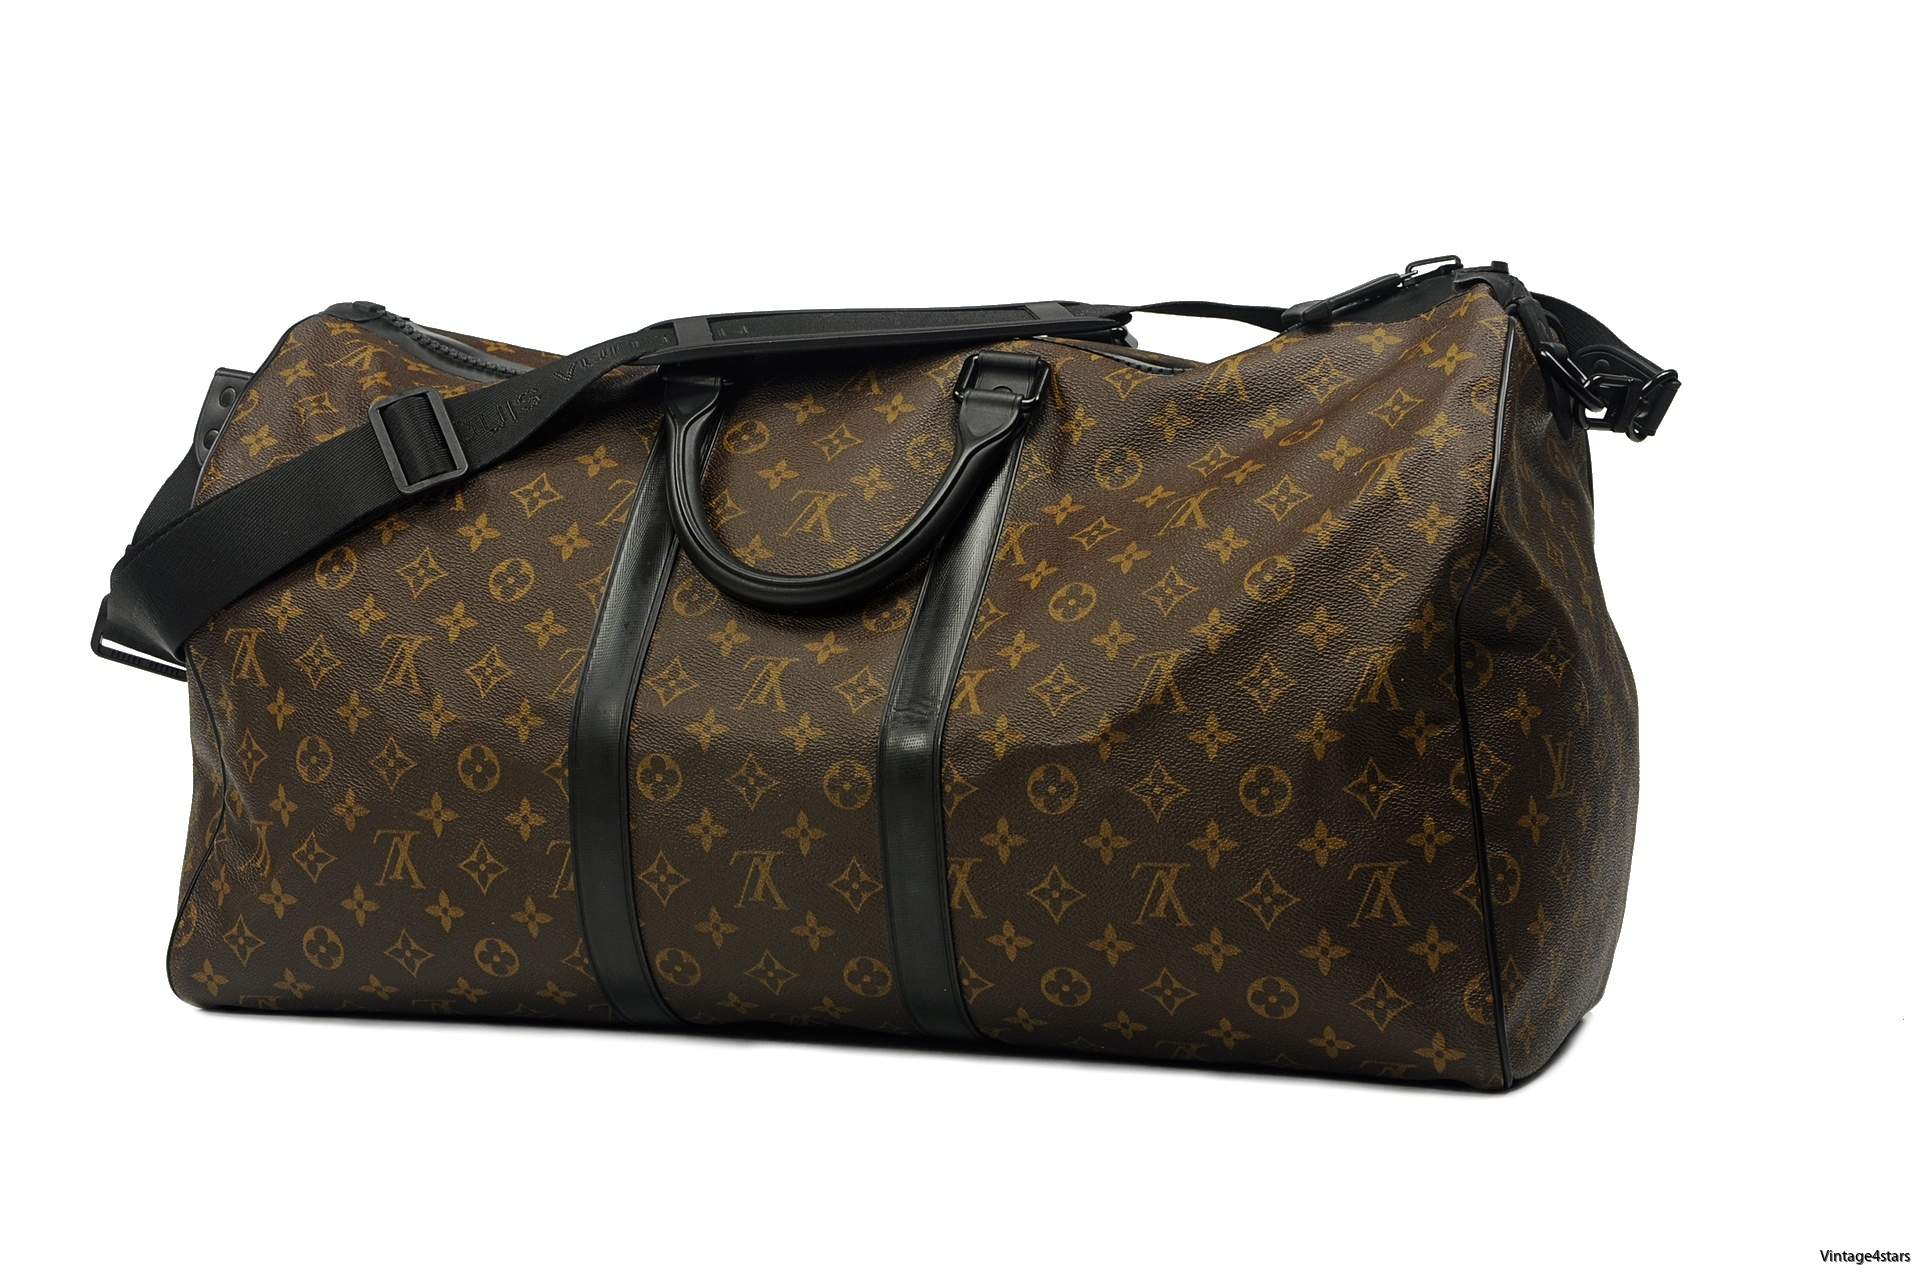 LOUIS VUITTON KEEPALL WATERPROOF 2